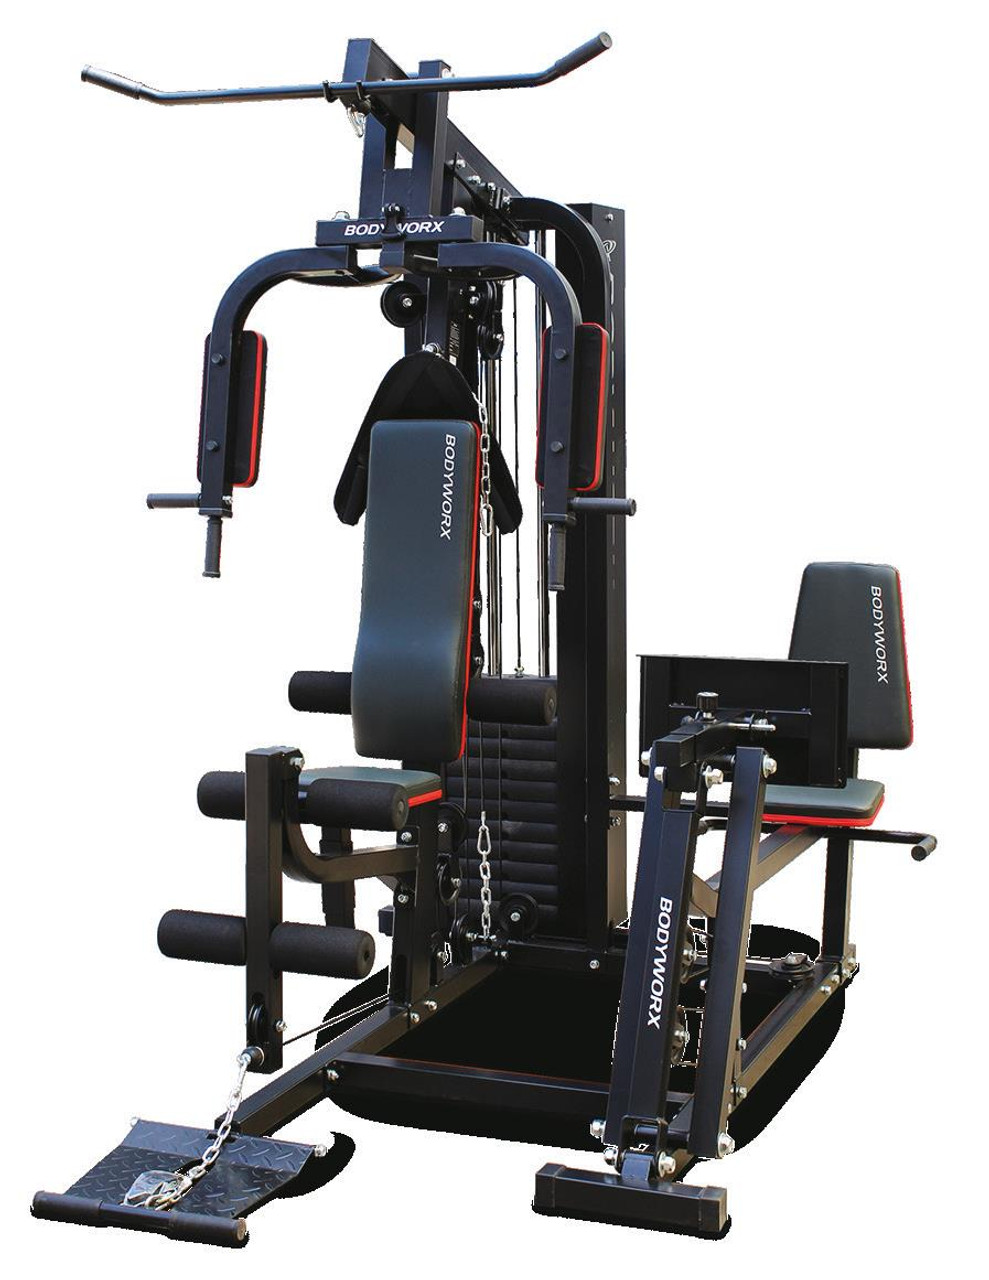 Bodyworx lbx900lp 215 leg press home gym buy online ph: 1800 123